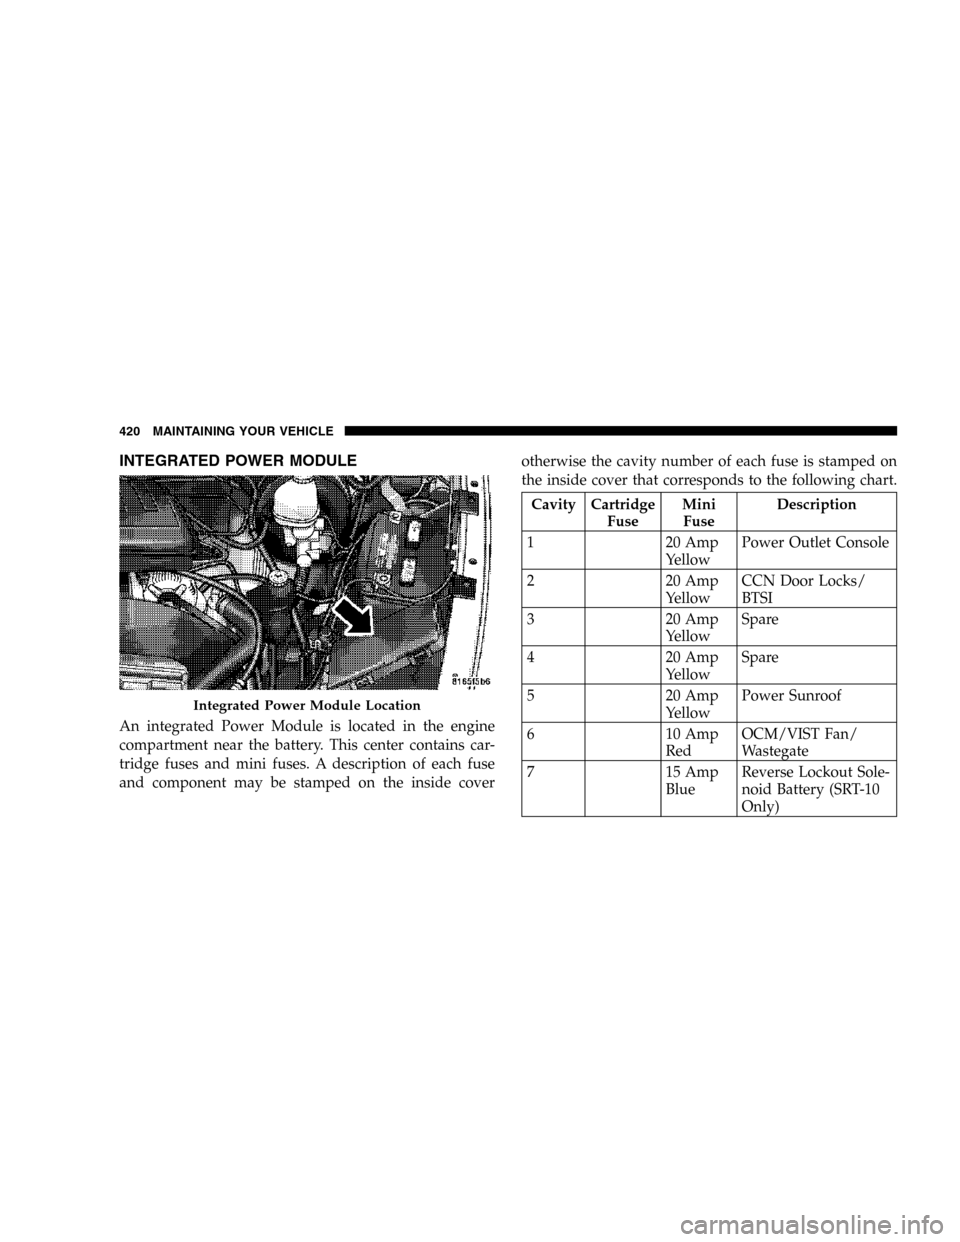 Fuse Box Iod Ccn Turn Signal : 28 Wiring Diagram Images